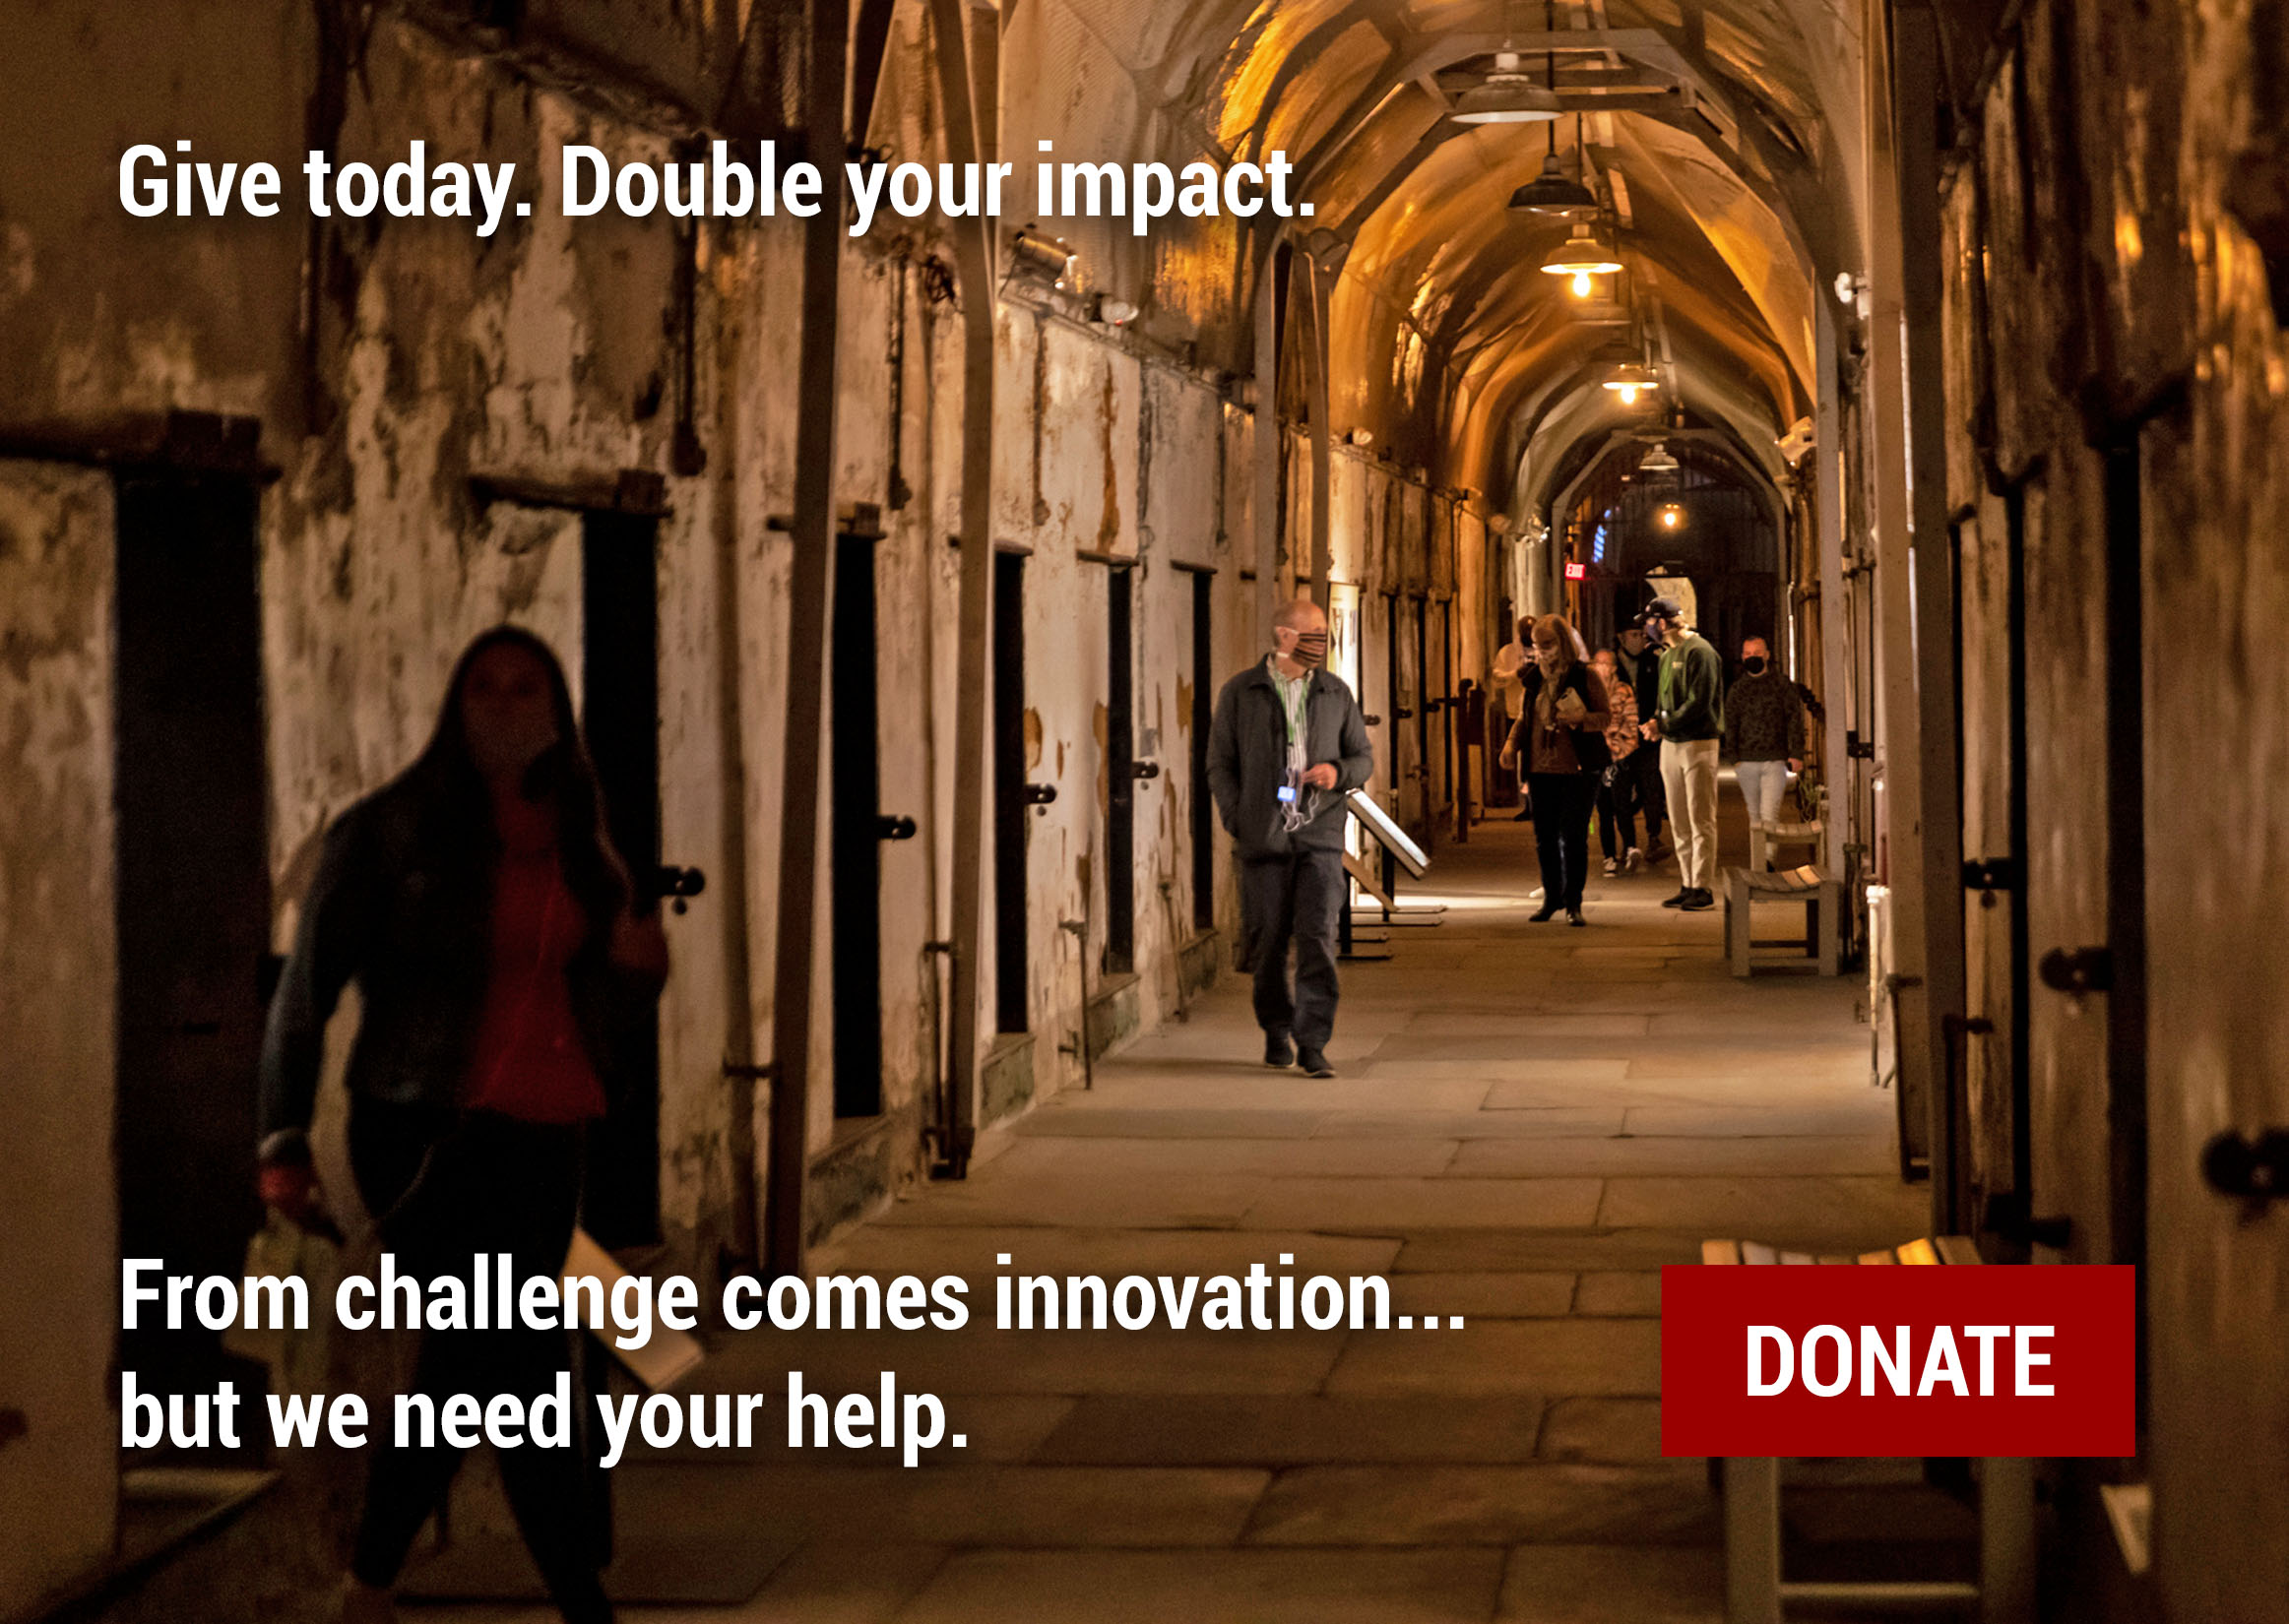 Give today, double your impact.